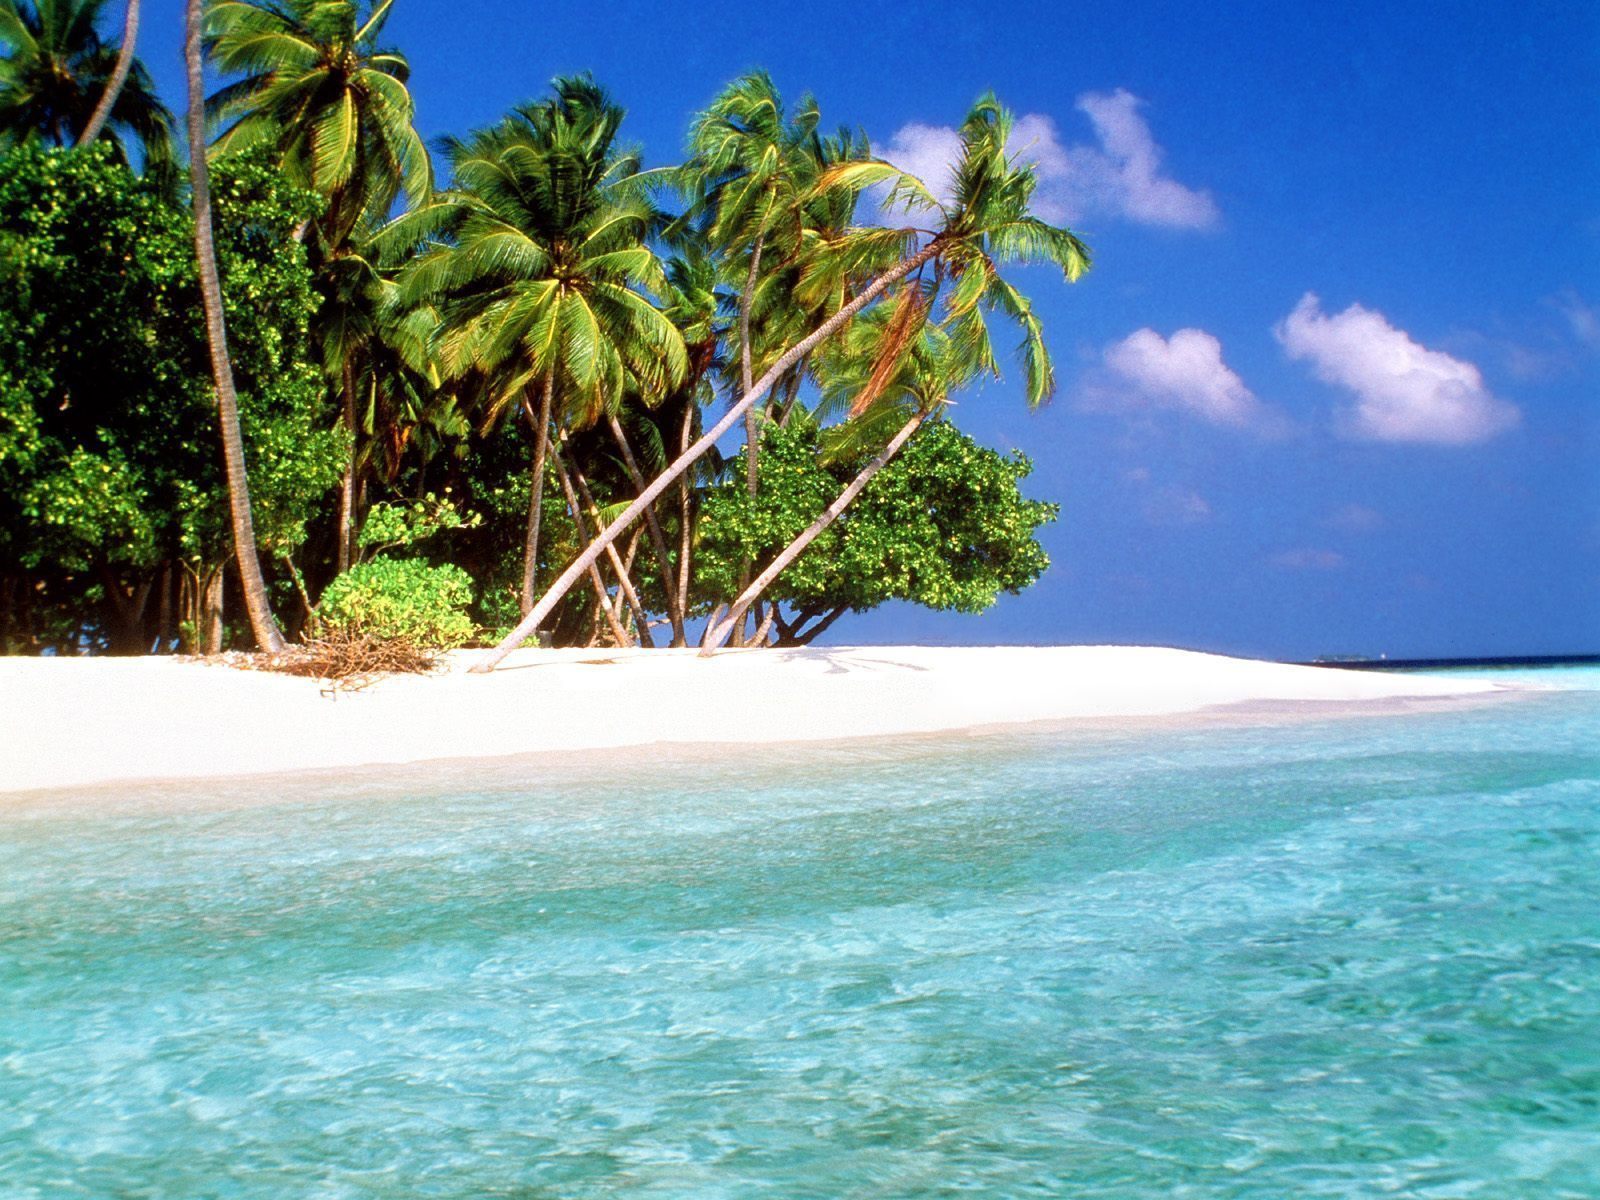 ... maldive islands officially republic of maldives is an island country